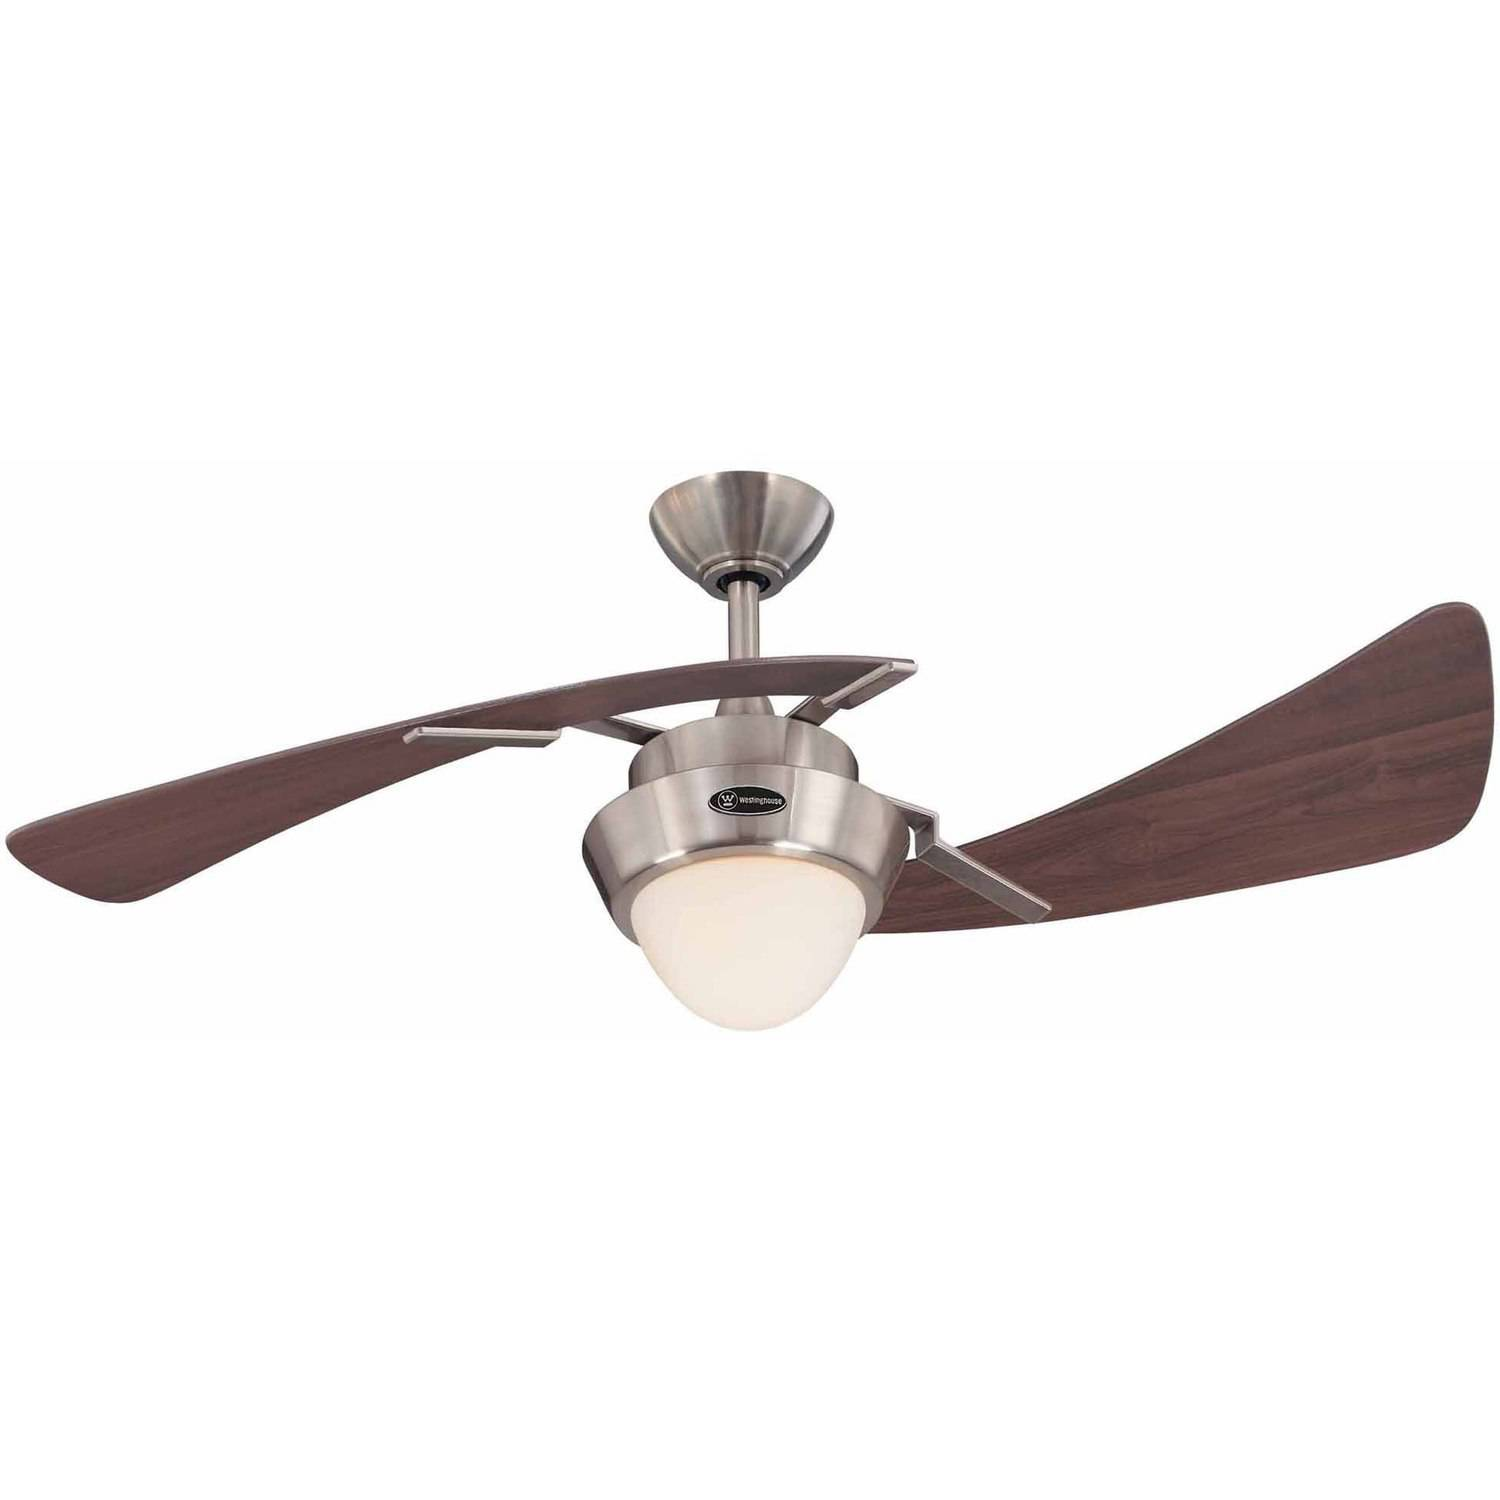 2 Bladed Ceiling Fan: Westinghouse 7214100 48